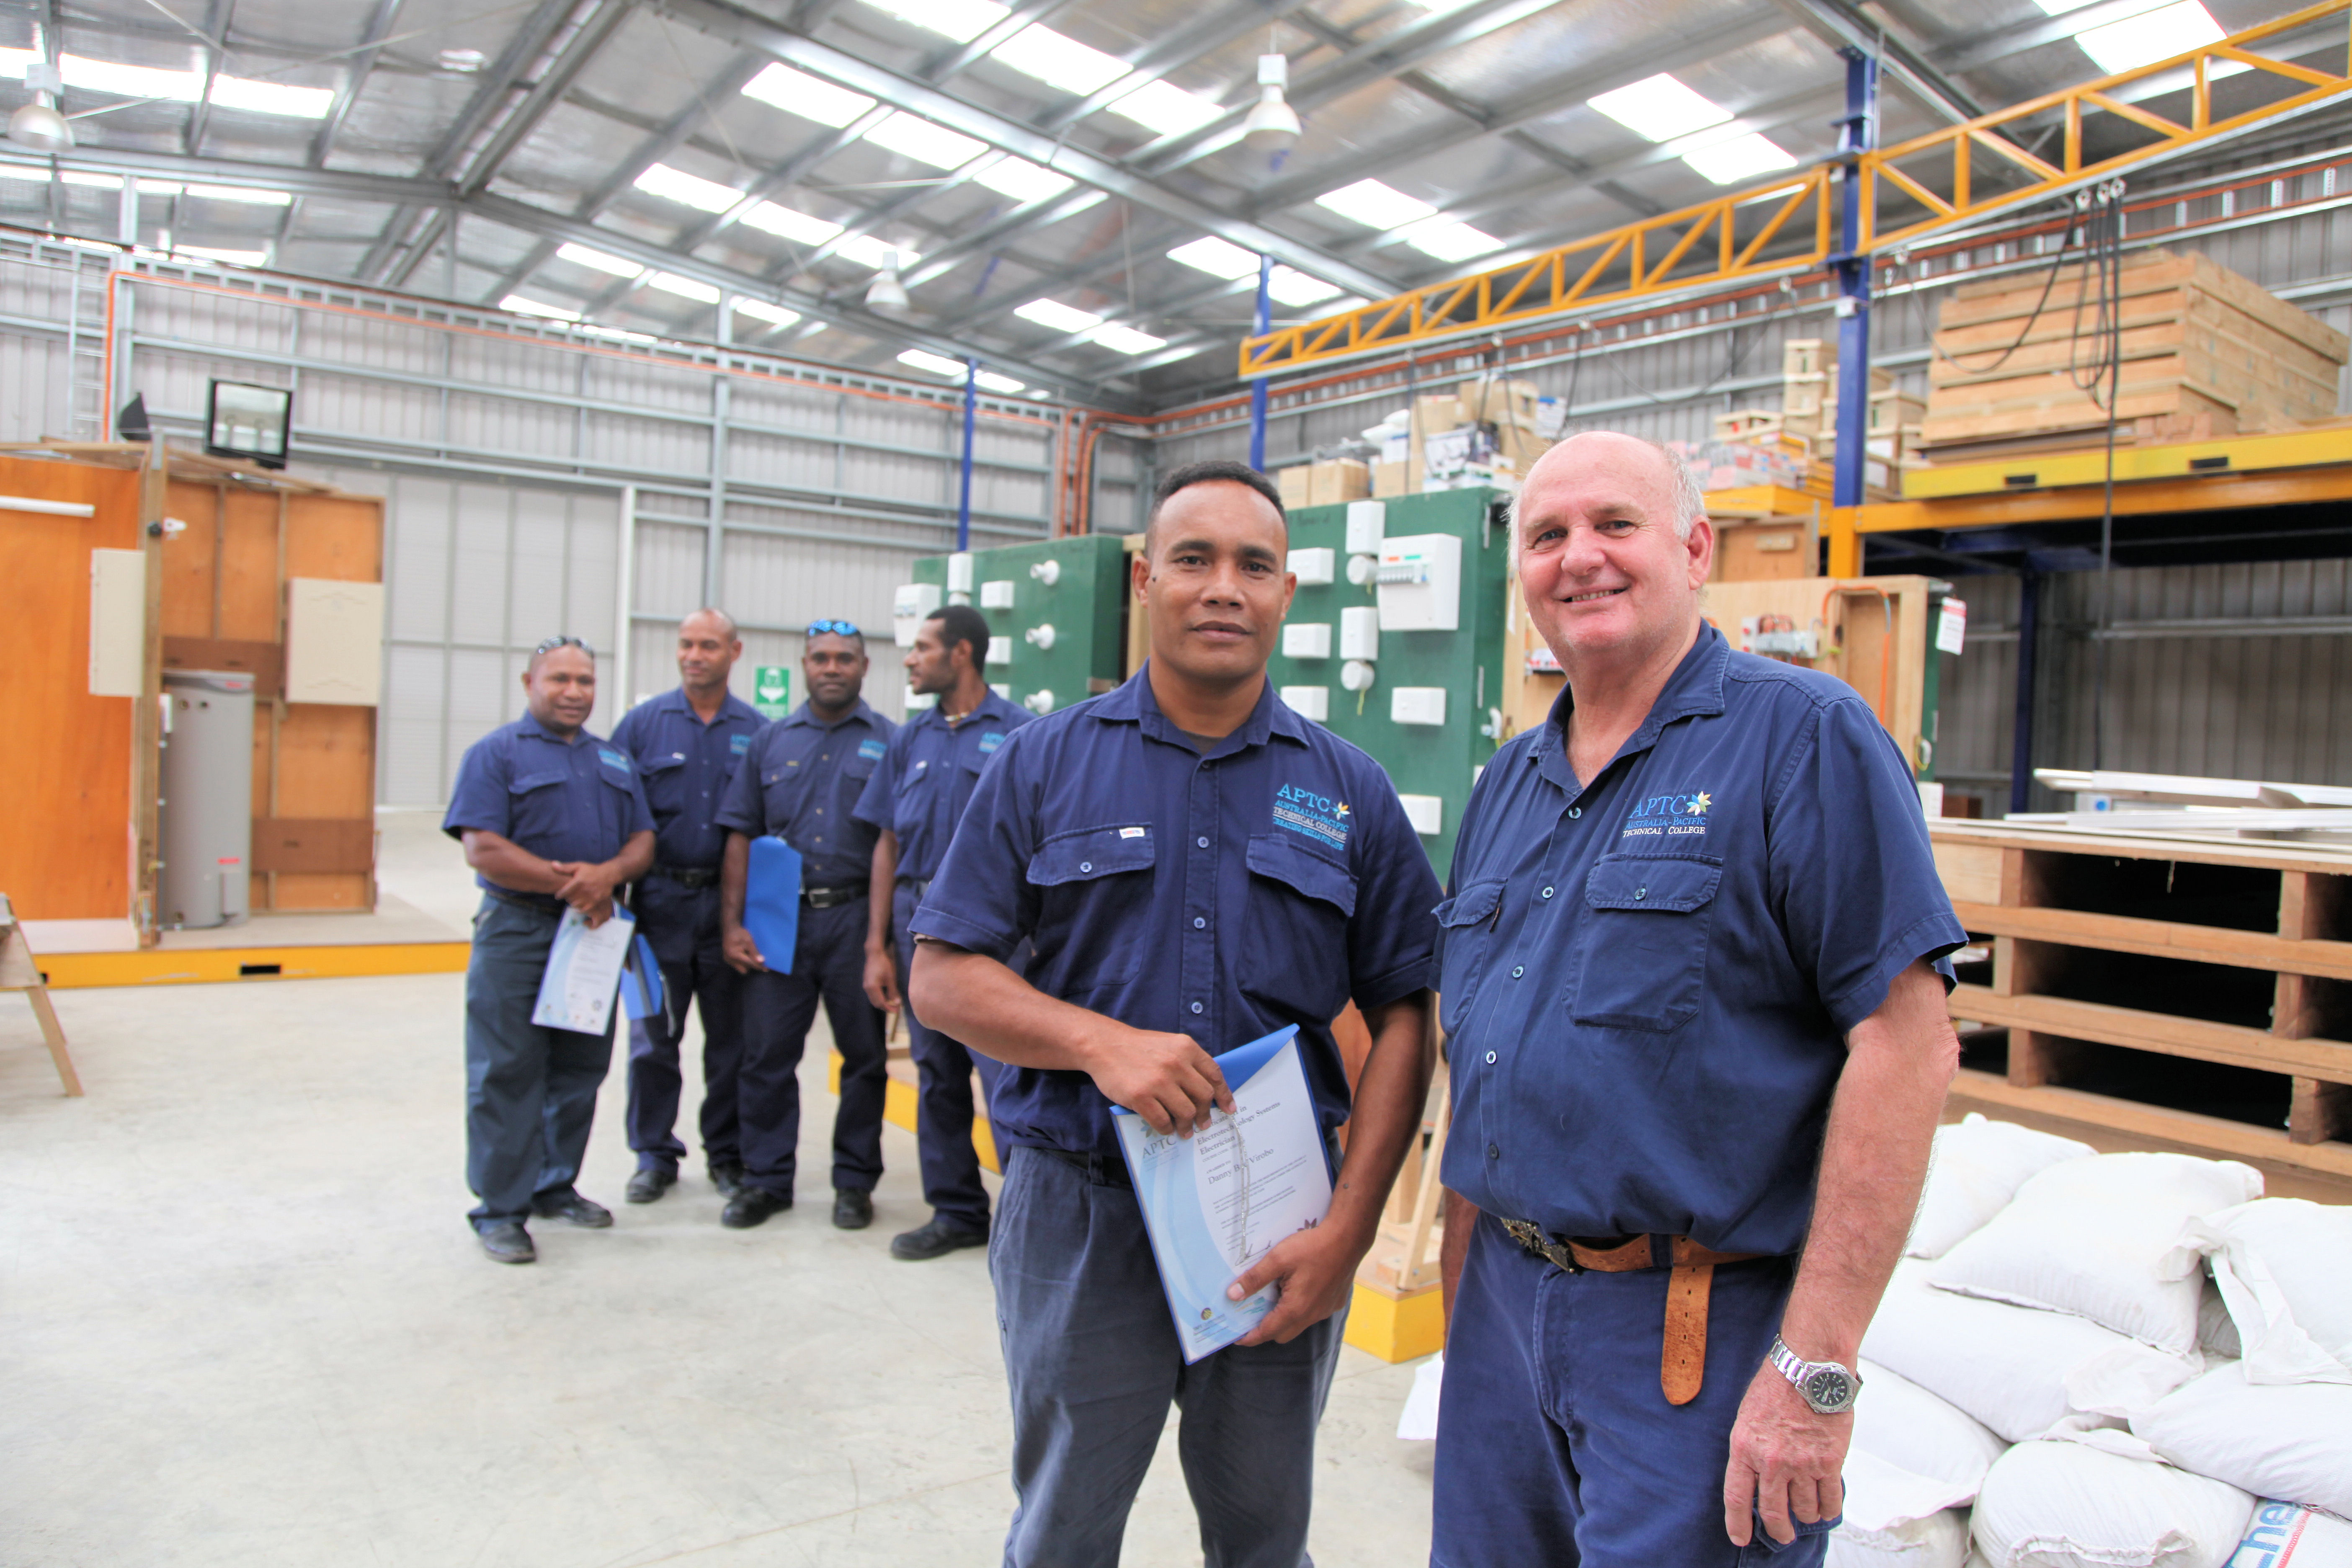 File:Australia provides training for PNG electricians (10673381114.